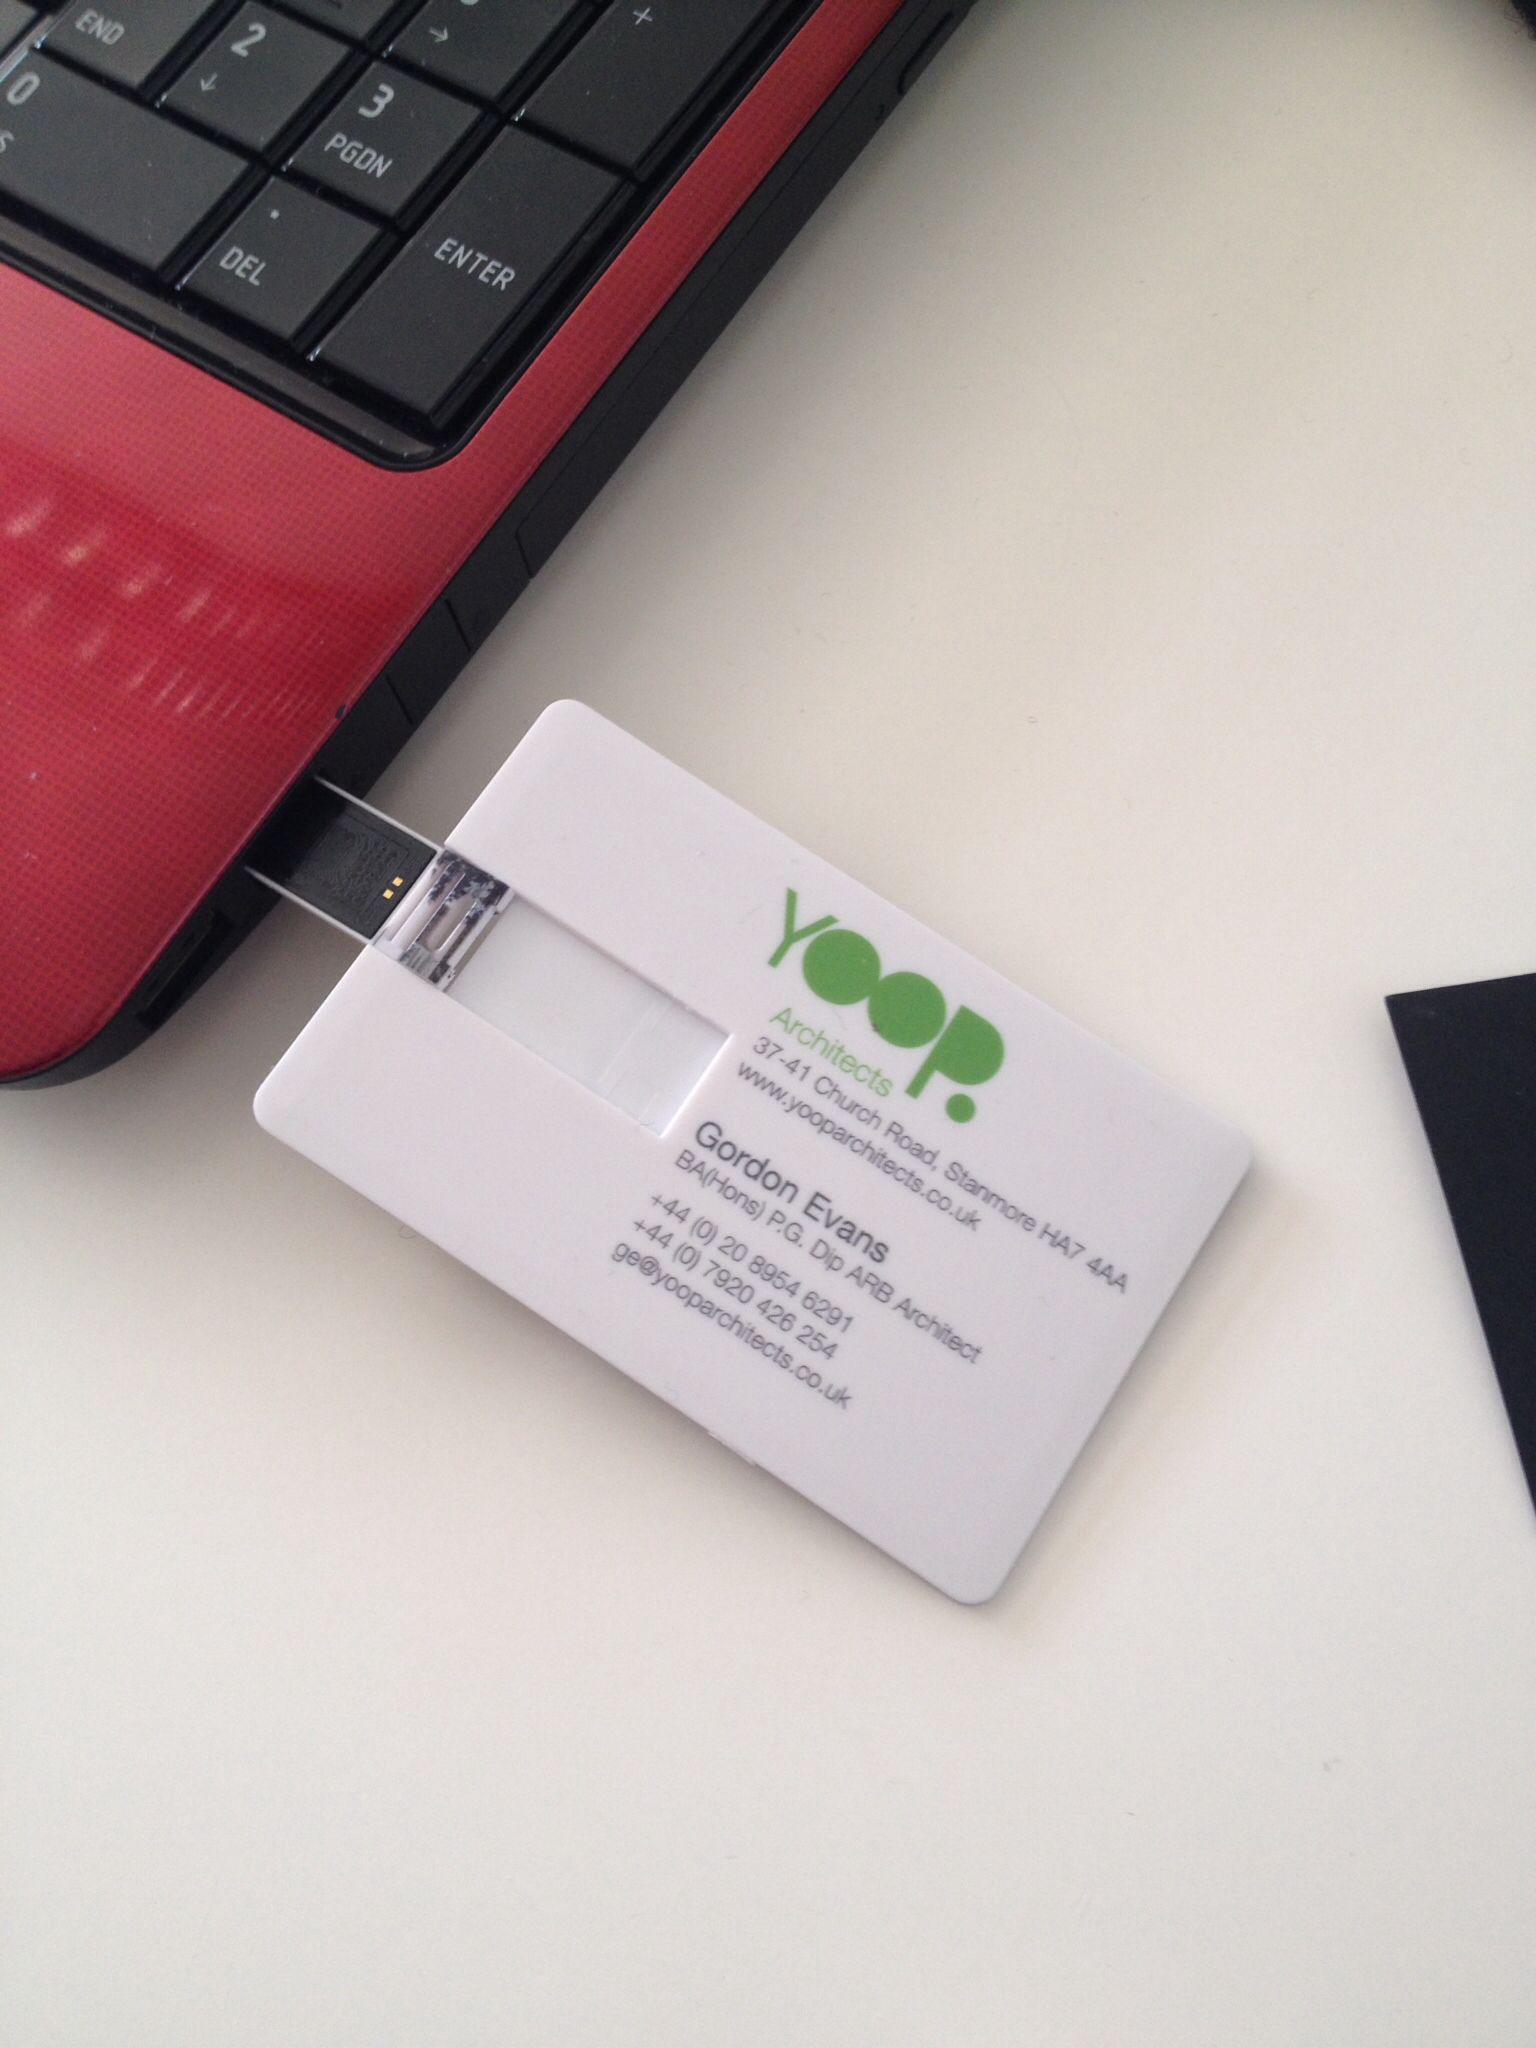 Usb Business Card 2gig Yoop Architects 07920426254 Perfect For